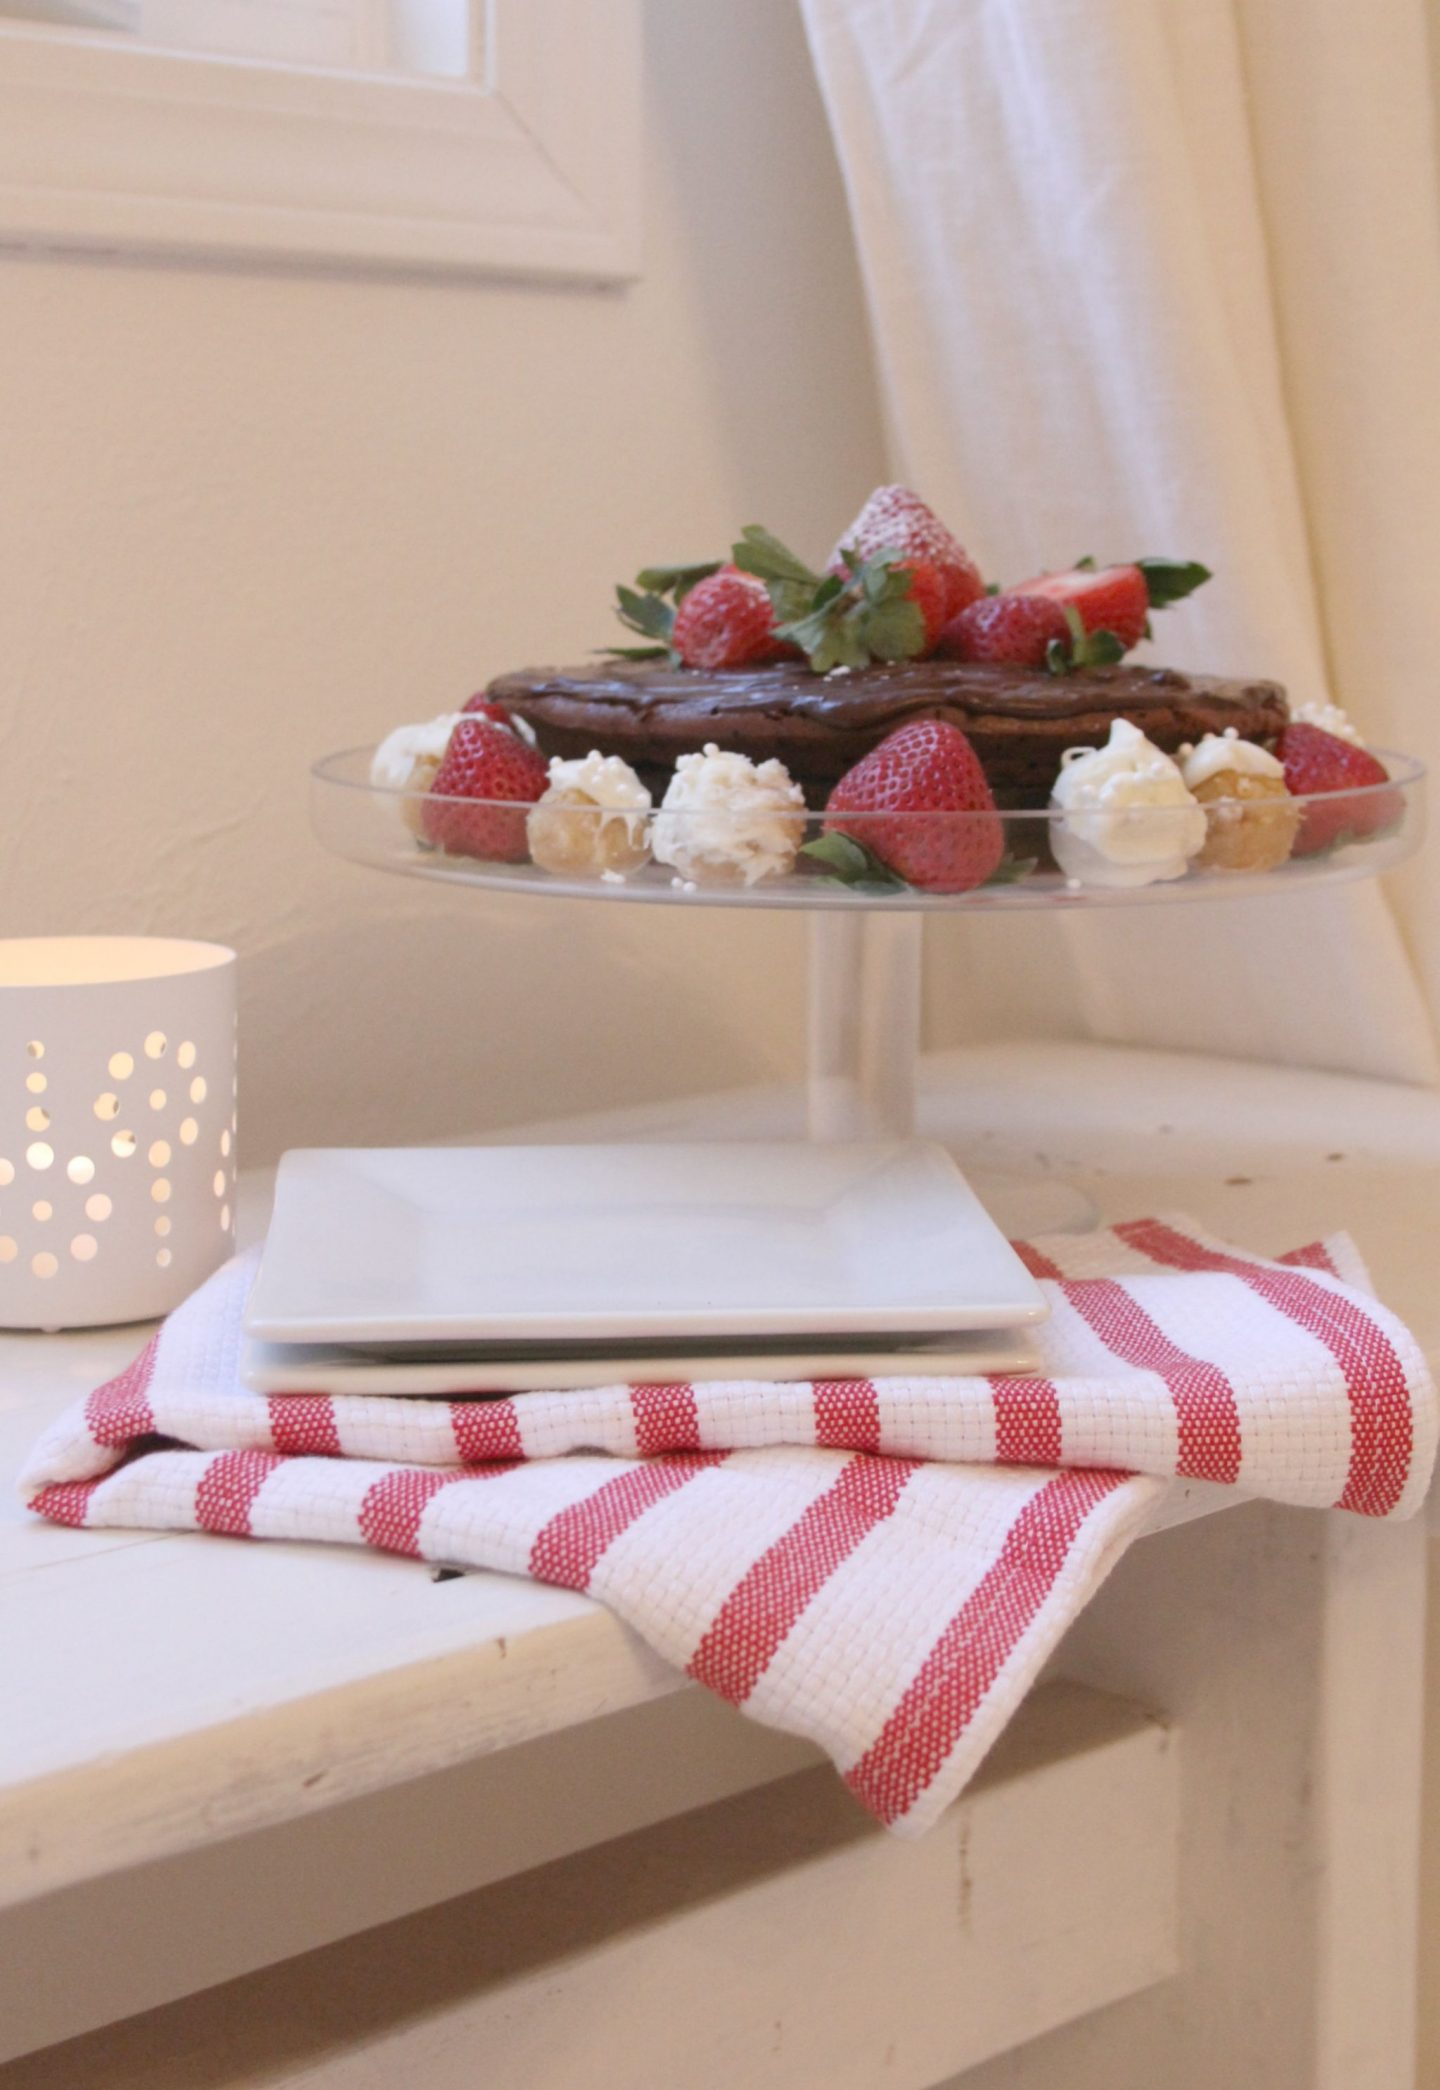 Chocolate cake with strawberries and sugar cookie truffles by Hello Lovely Studio